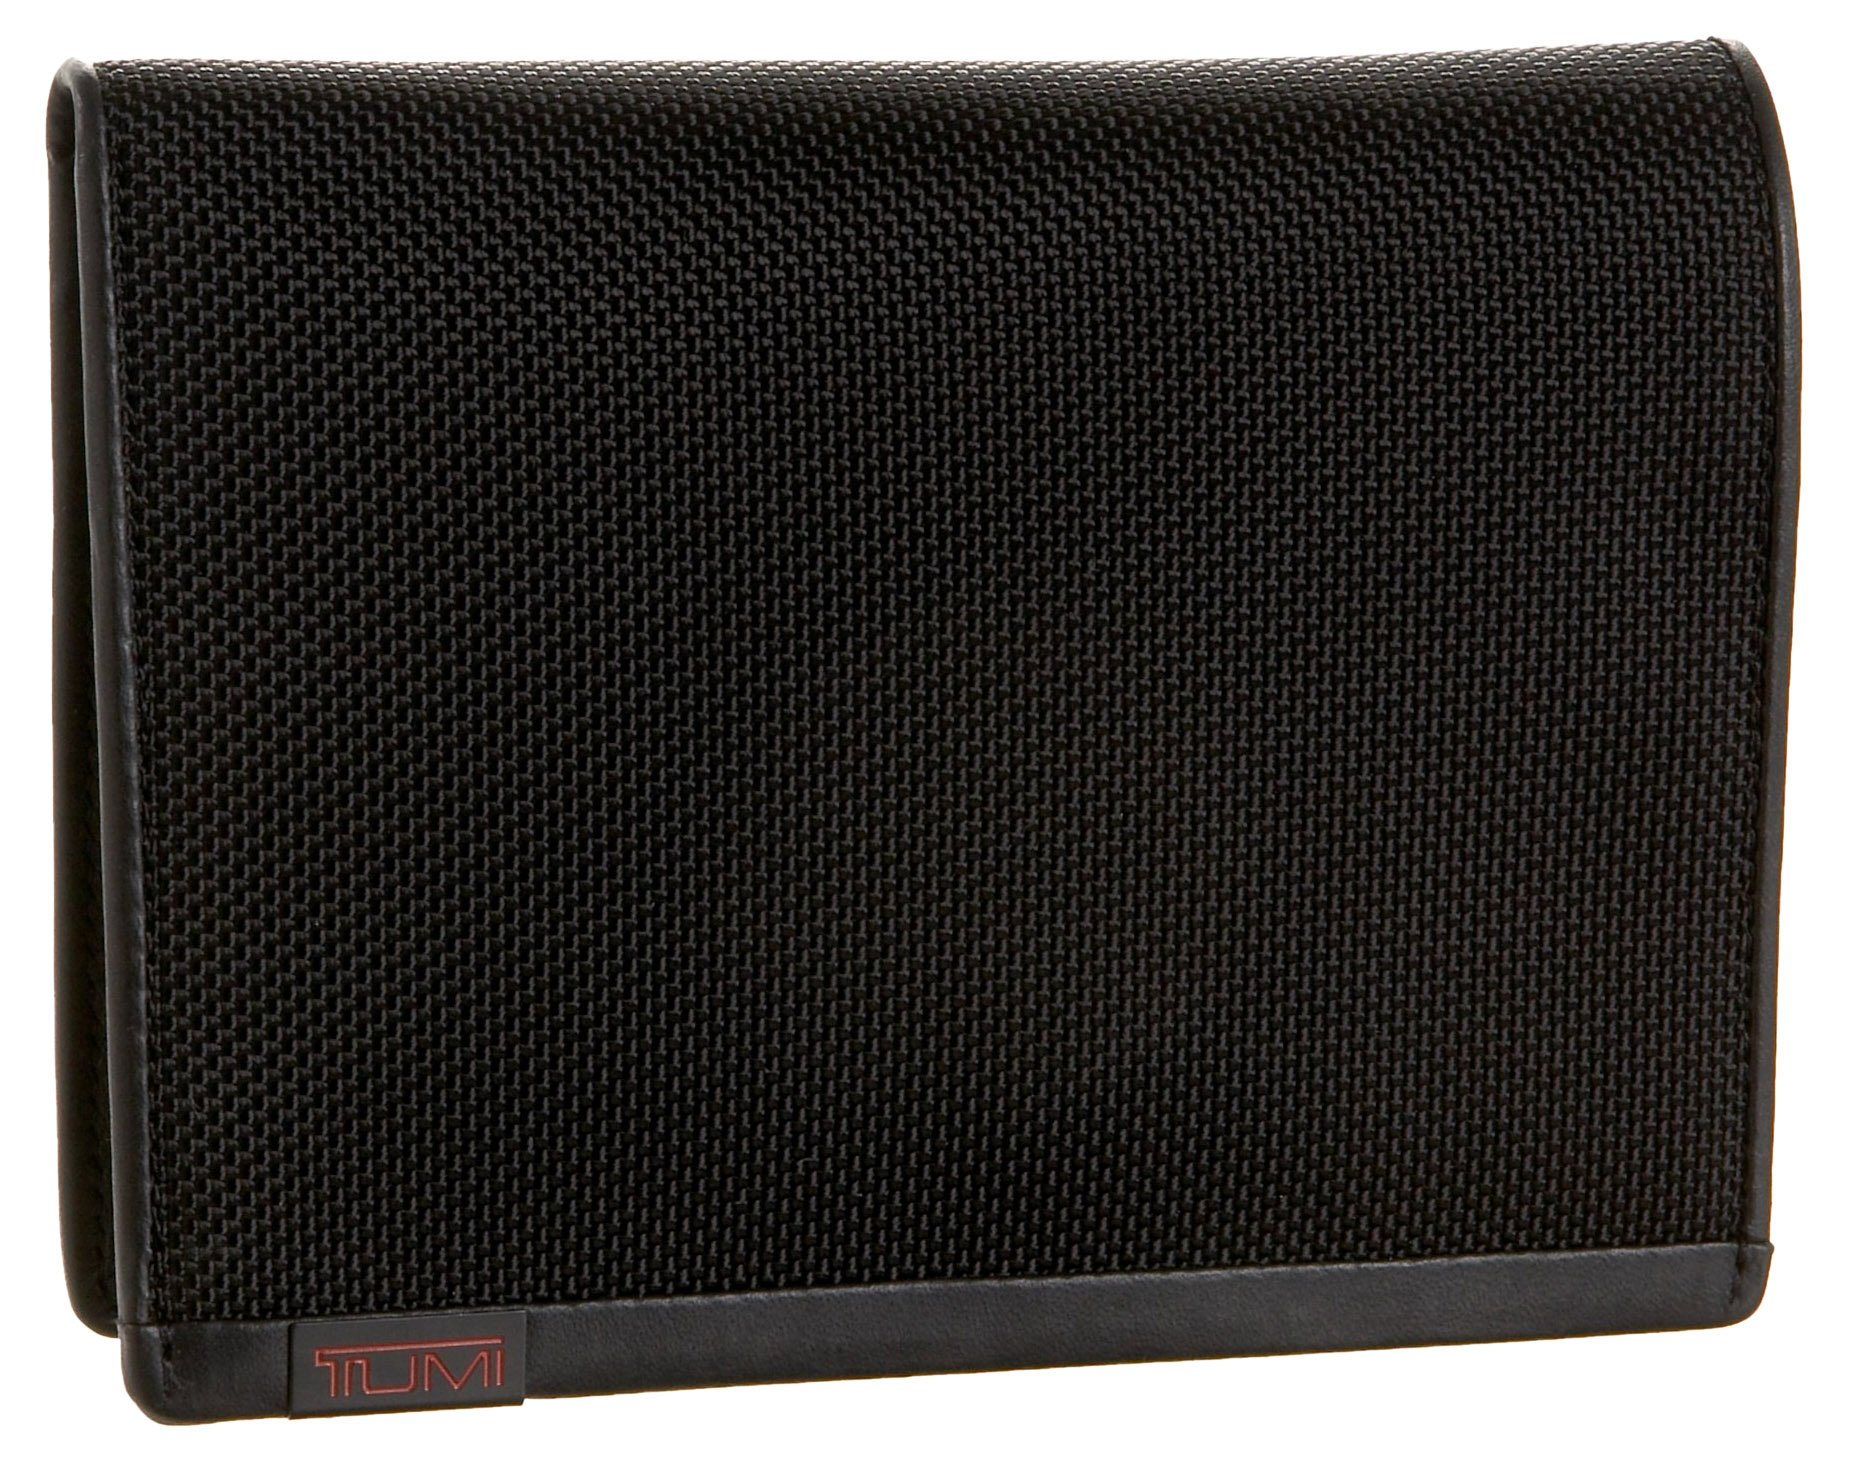 TUMI - Alpha Passport Case Wallet with RFID ID Lock for Men - Black by TUMI